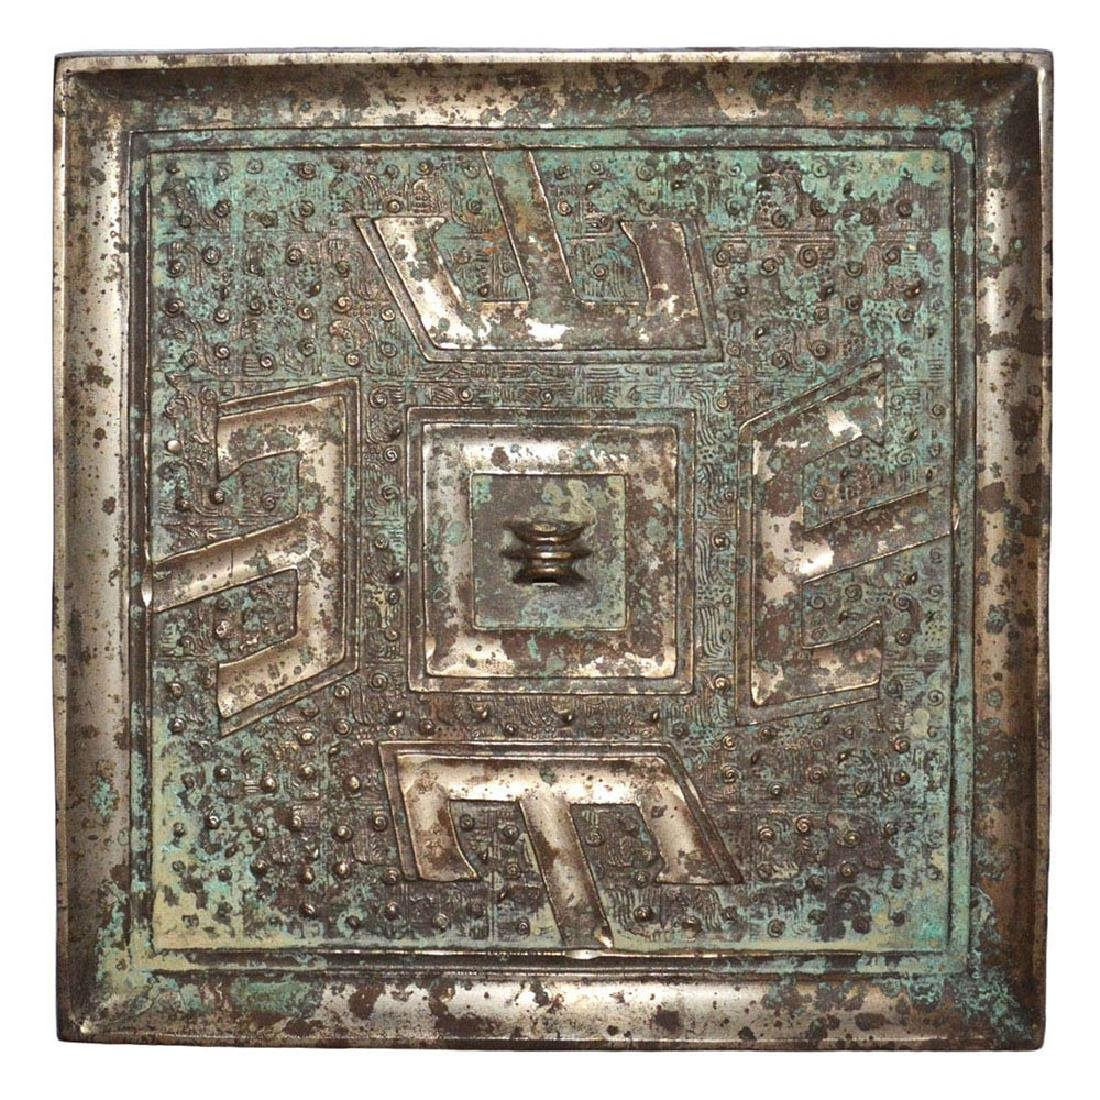 Warring States, A Square Silvery Bronze 'Shan' Mirror